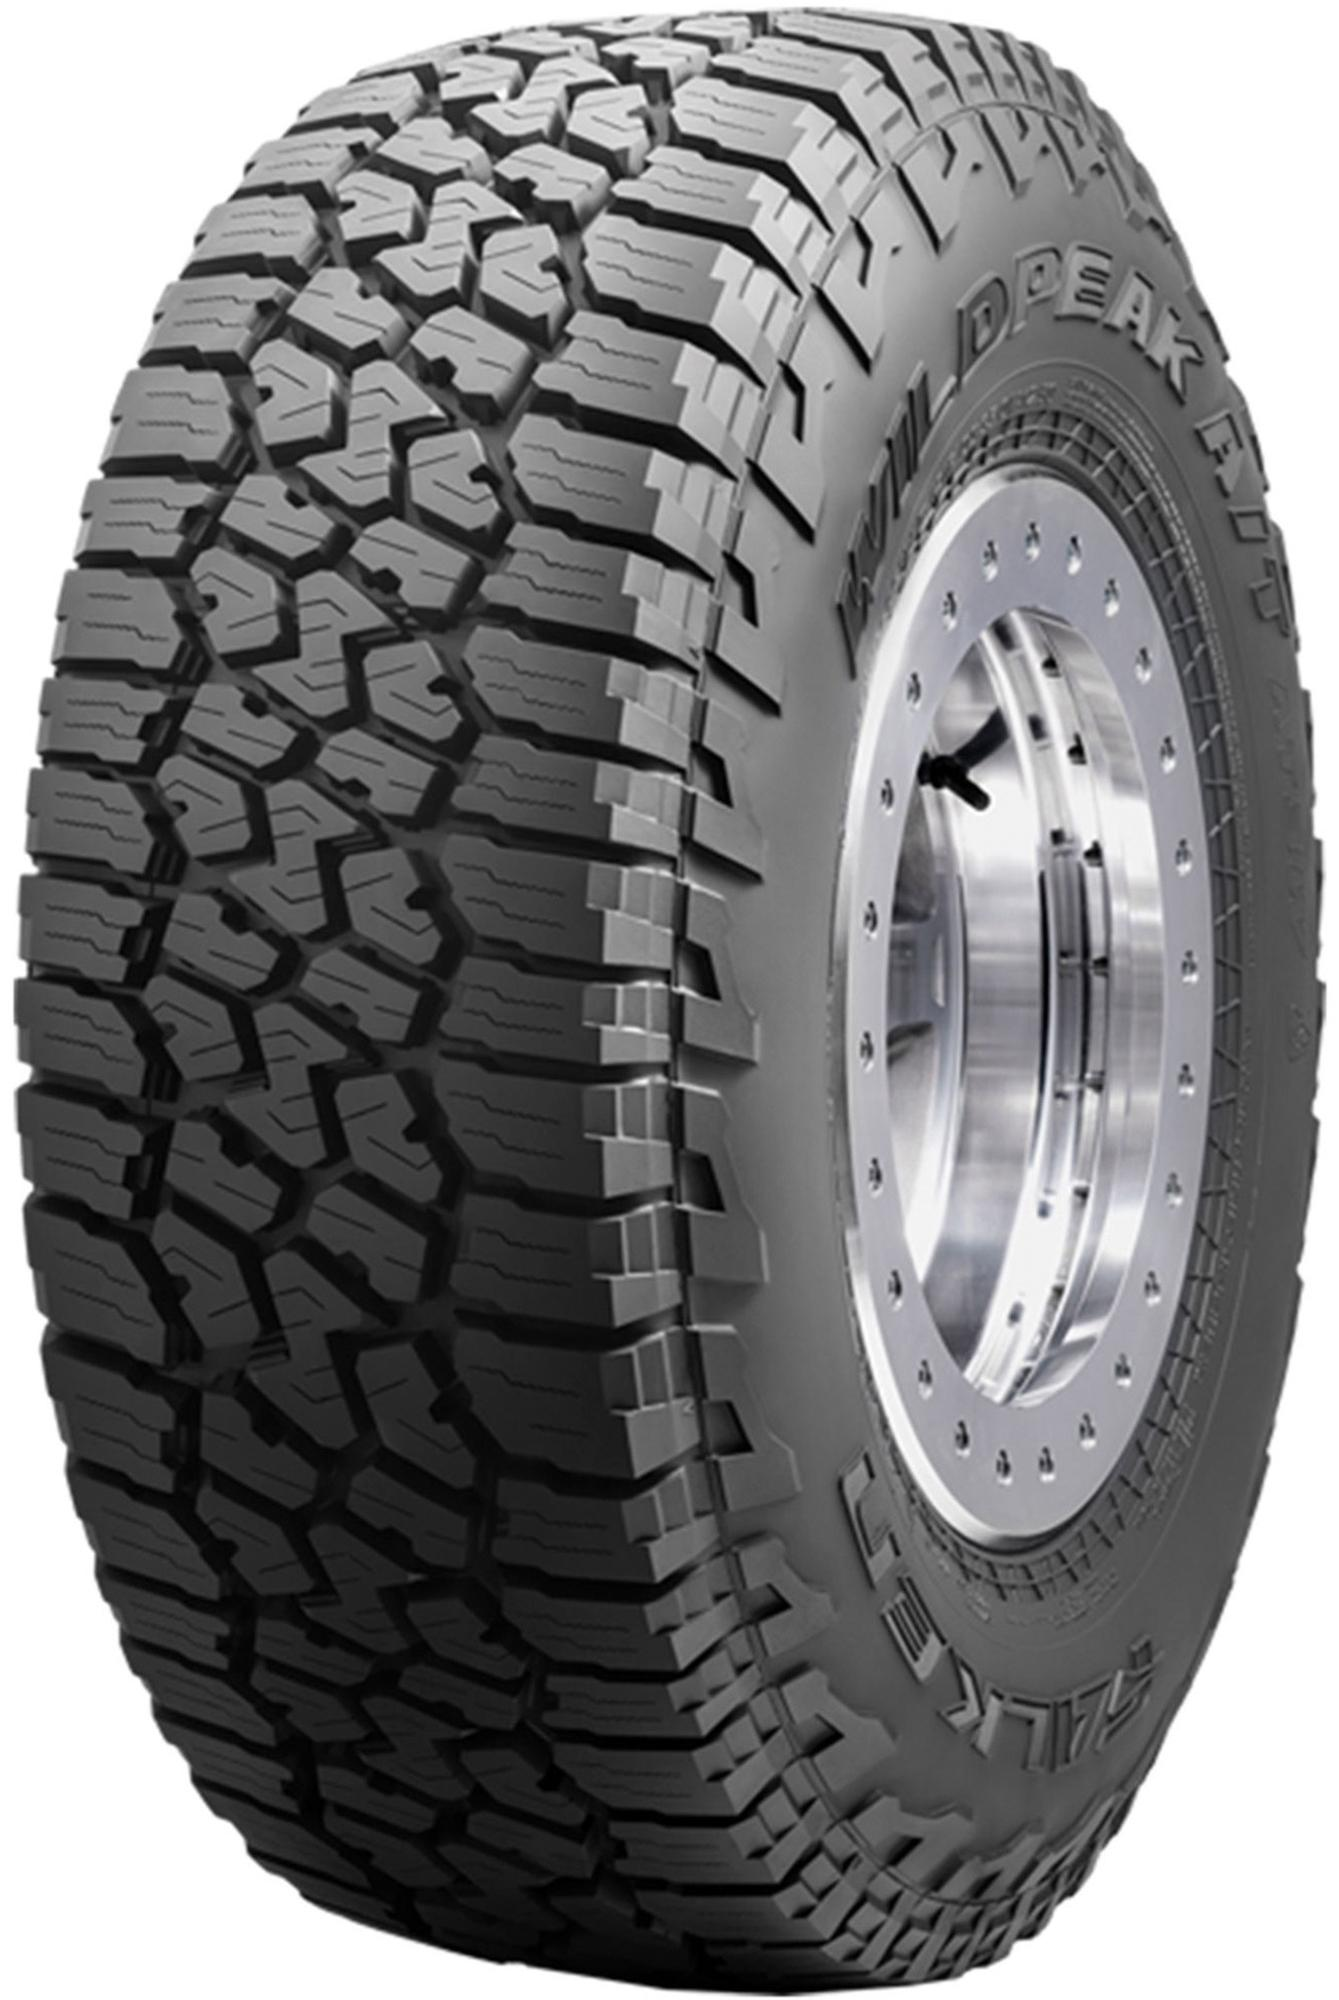 Cheap Tire Places >> Buy Tires And Wheels Online Tirebuyer Com